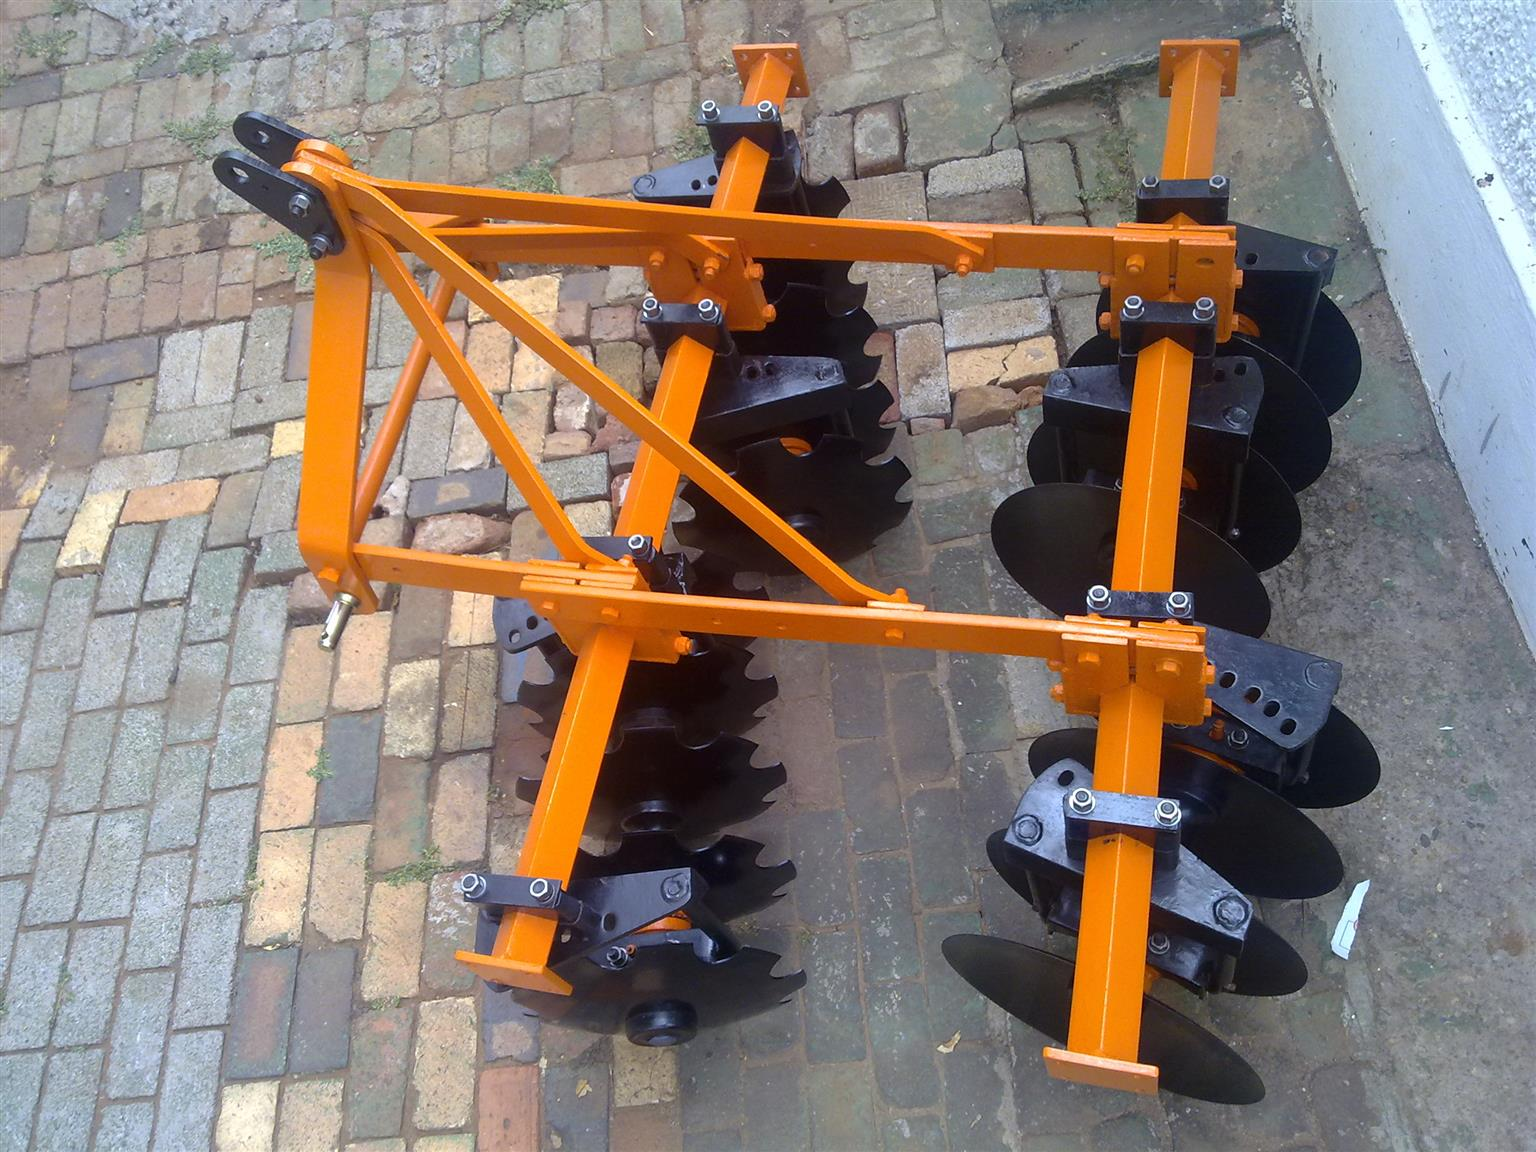 18 Disc Harrow for sale/LM 18 skottel dis te koop